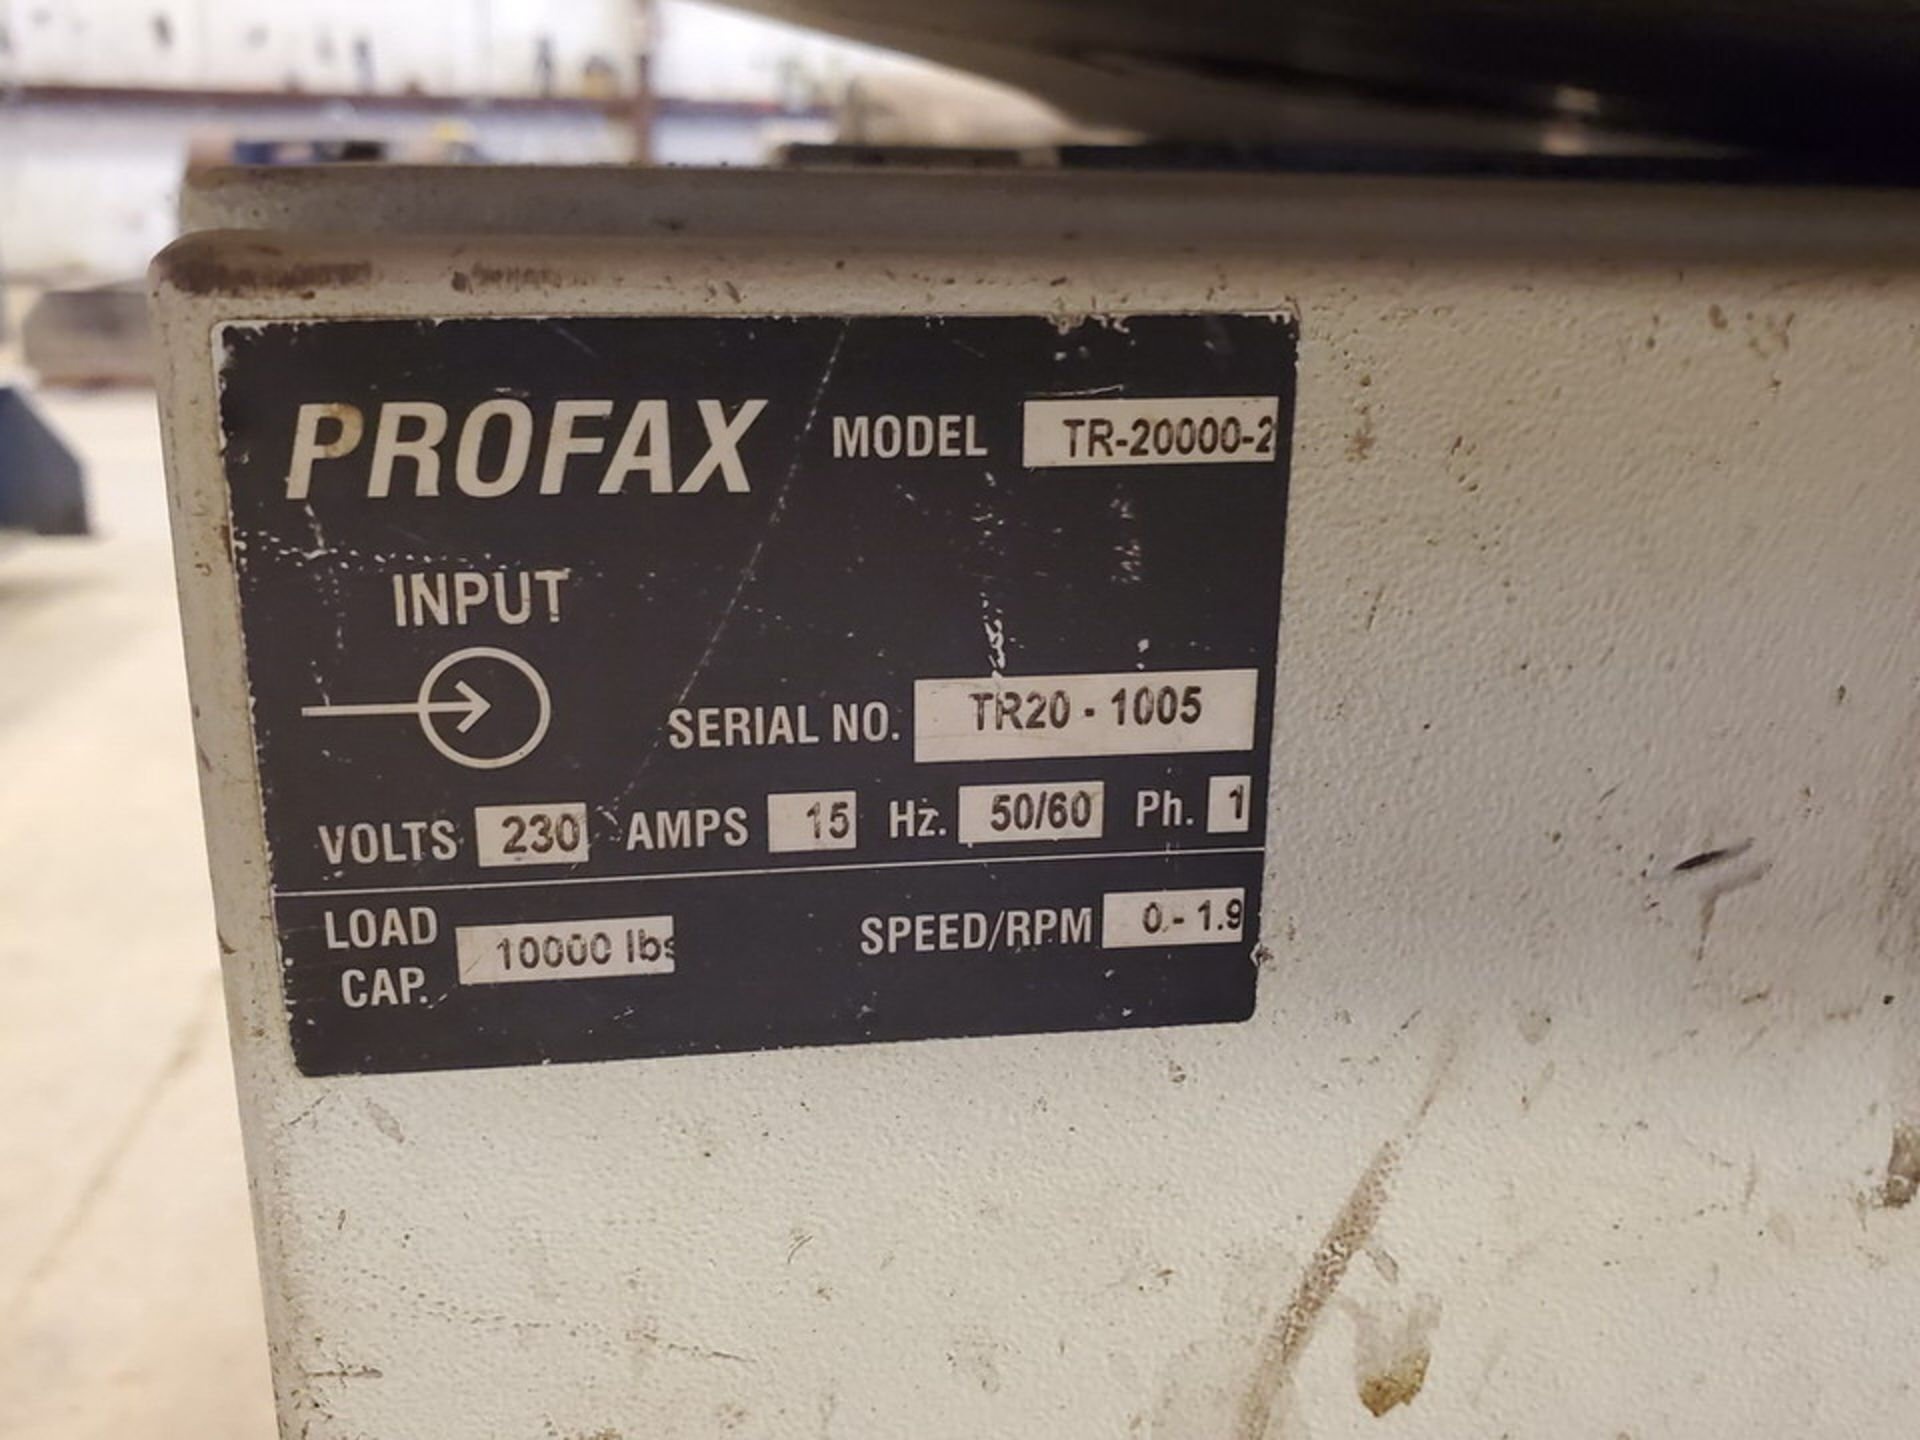 "Profax TR-20000 Turn Roll 10K Cap., 115V, 15A, 50/60HZ, 1PH, RPM: 0-1.9; 5"" Wheel Dia. - Image 7 of 7"